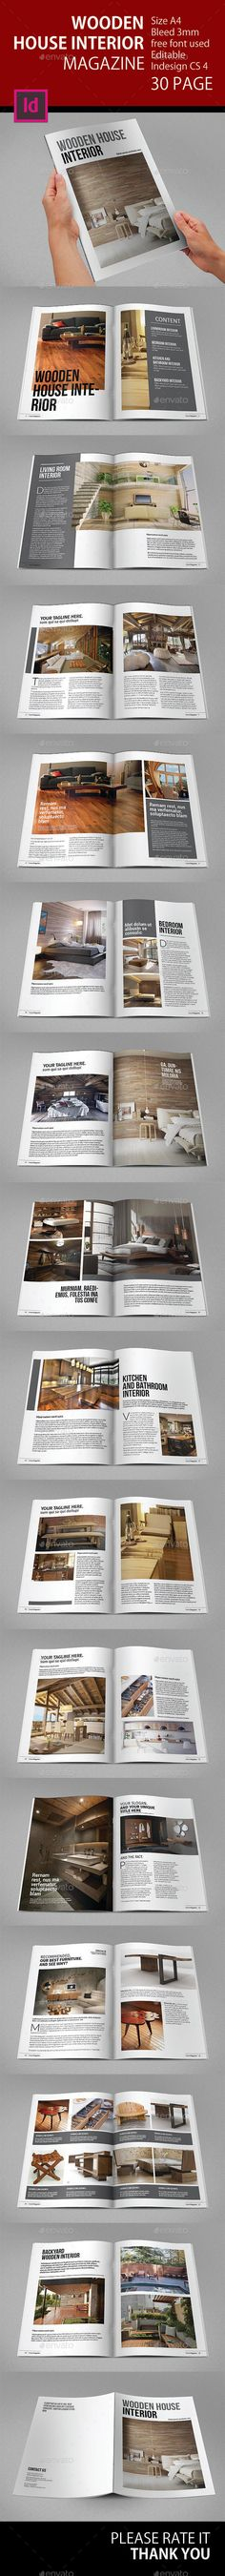 A4 Wooden House Interior Magazine Template #design Download: http://graphicriver.net/item/a4-wooden-house-interior-magazine/12106888?ref=ksioks